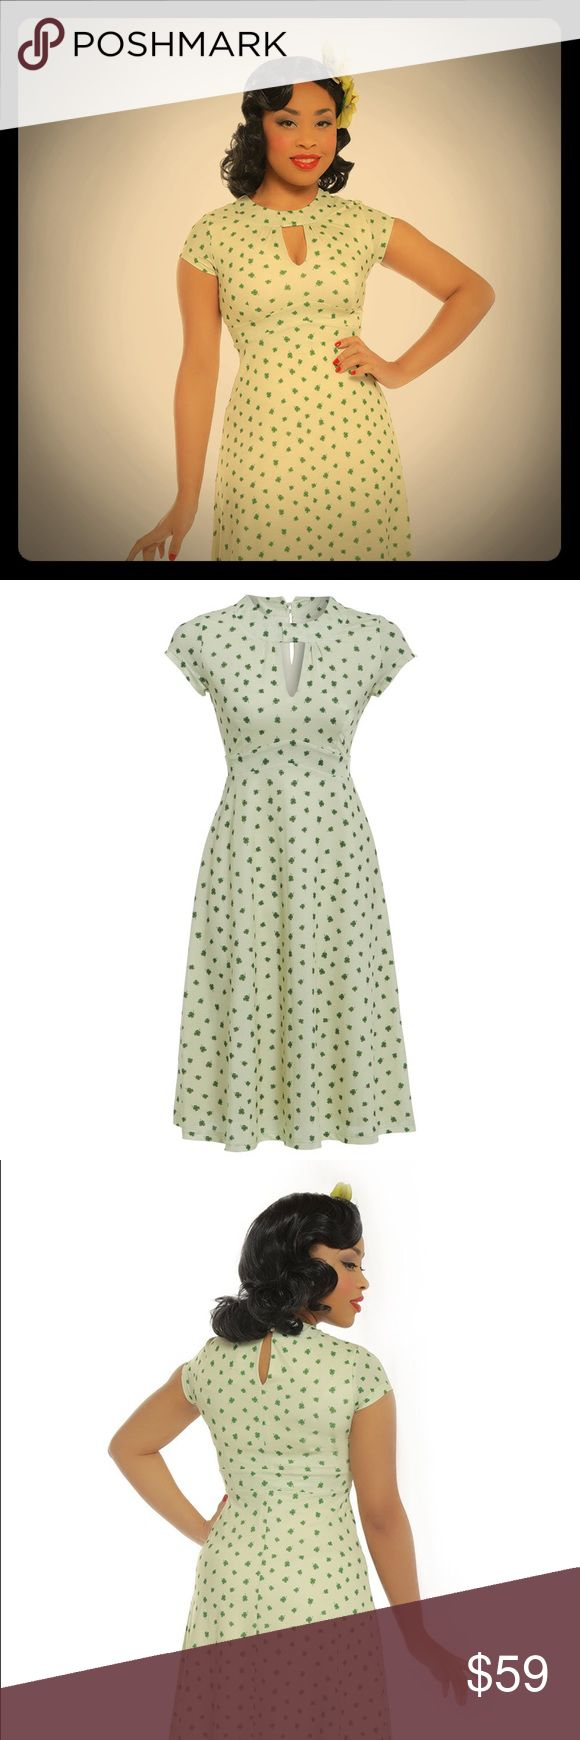 Lucky Clover Pinup Retro Dress NWT 14W 16W 1X Kelly and spring green 4 clovers on off white background. Stretch knit overhead styling with keyhole front and back, single button closure on back of neck. Lined. SUPER cute, have to see in person!! NWT, size UK 3X which is a  14W/16W or 1X USA size. Modcloth tagged for exposure.  ModCloth Dresses Midi